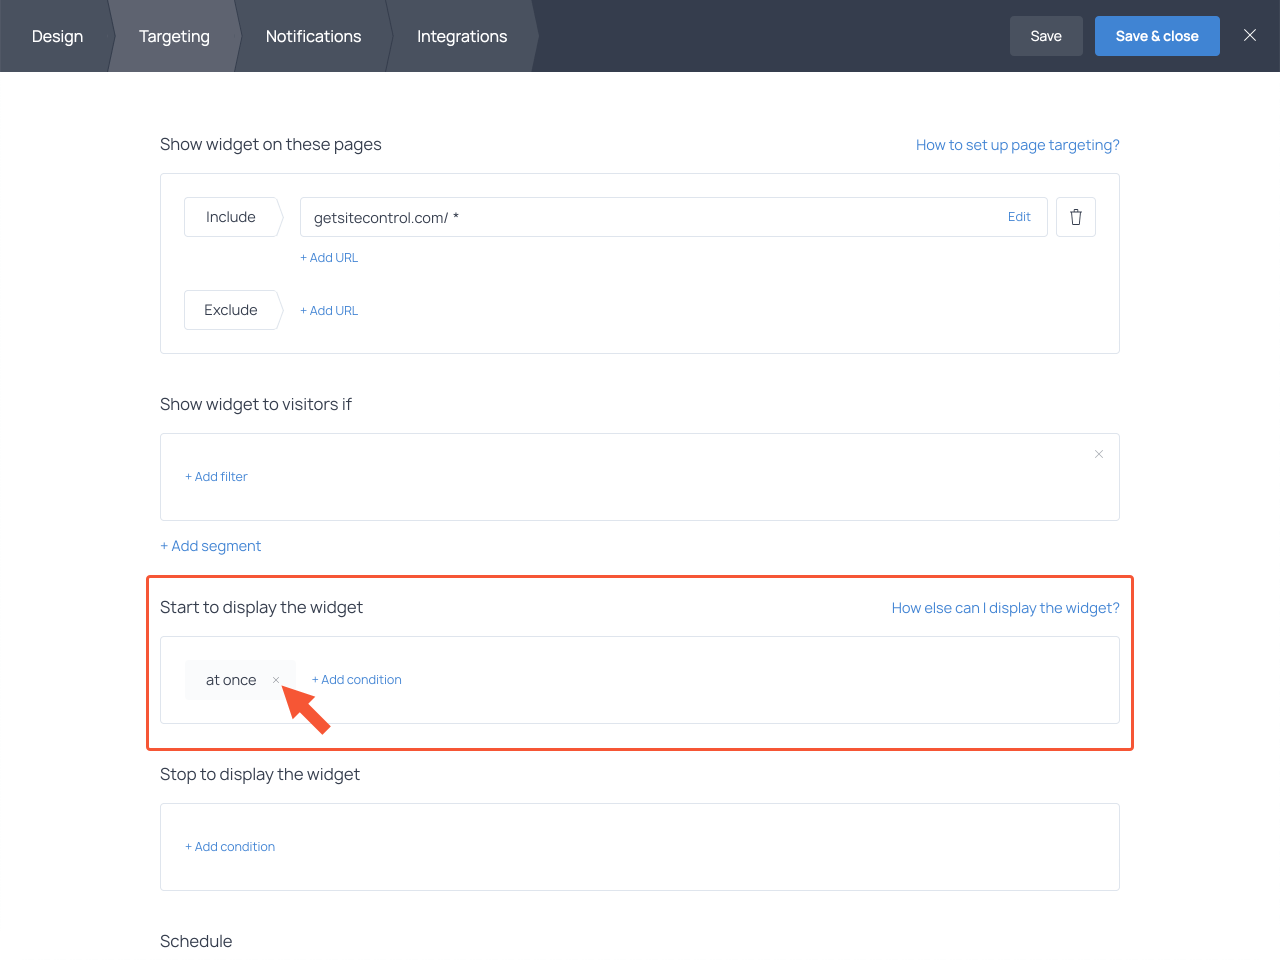 Start to display the widget section with the highlighted at once section